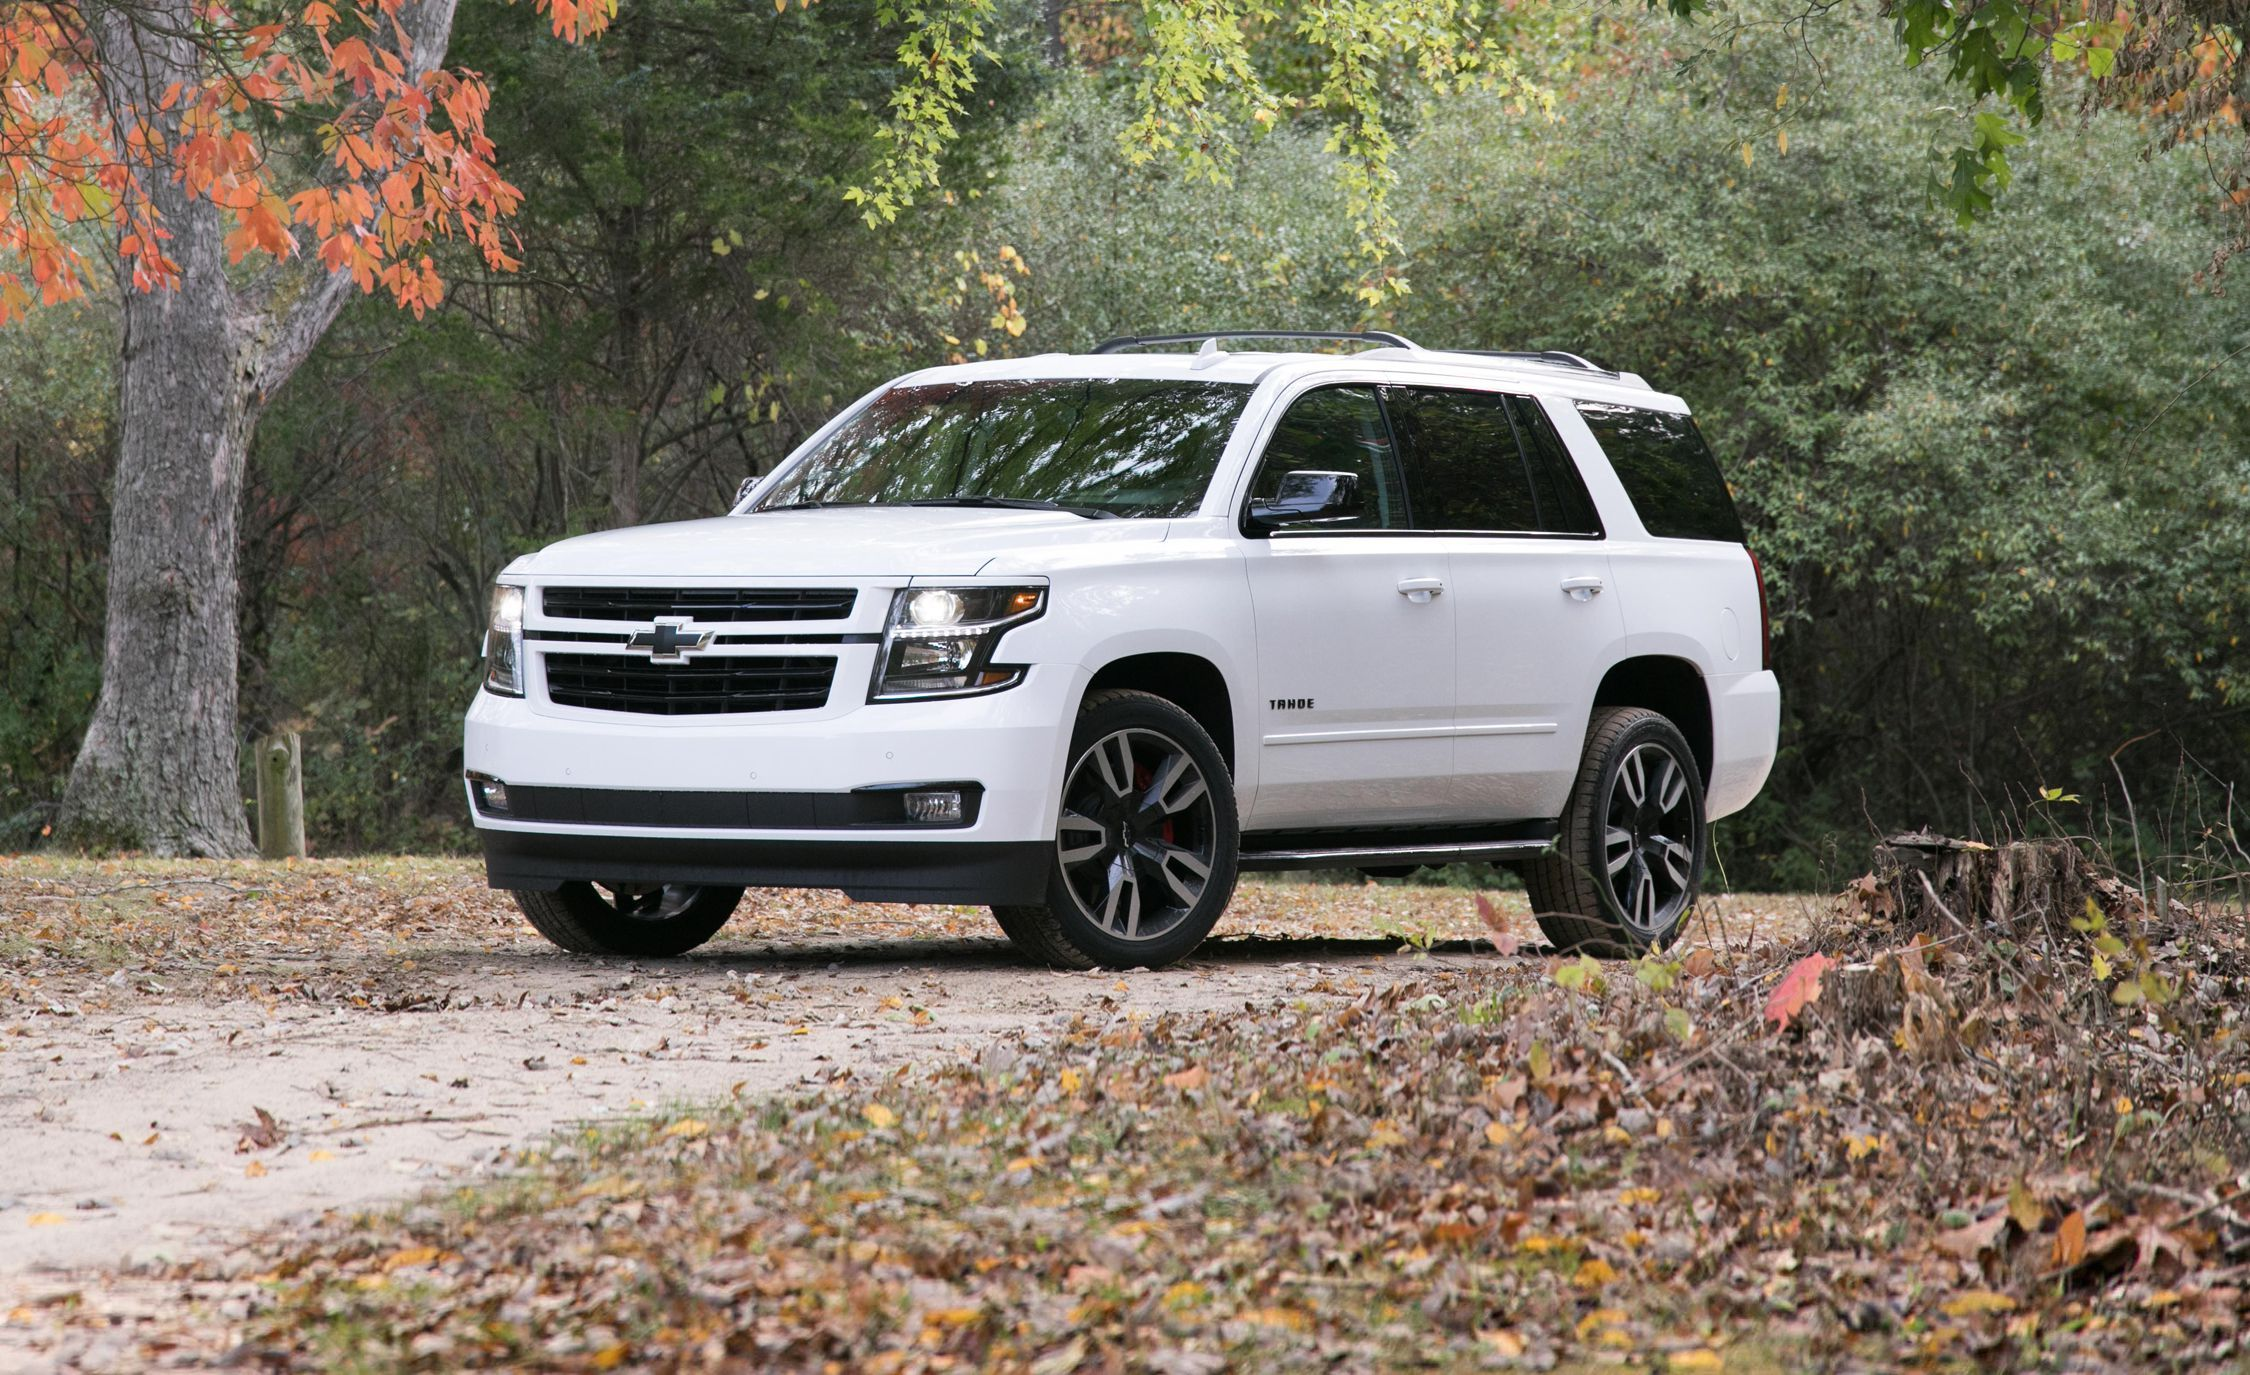 2018 Chevy Tahoe Gmsuv Chevy Tahoe Suv Cars Chevy Suburban Chevrolet Chevy Chevysuburban Suburban Tahoe Chevy Tahoe Chevy Tahoe Ltz Chevrolet Tahoe